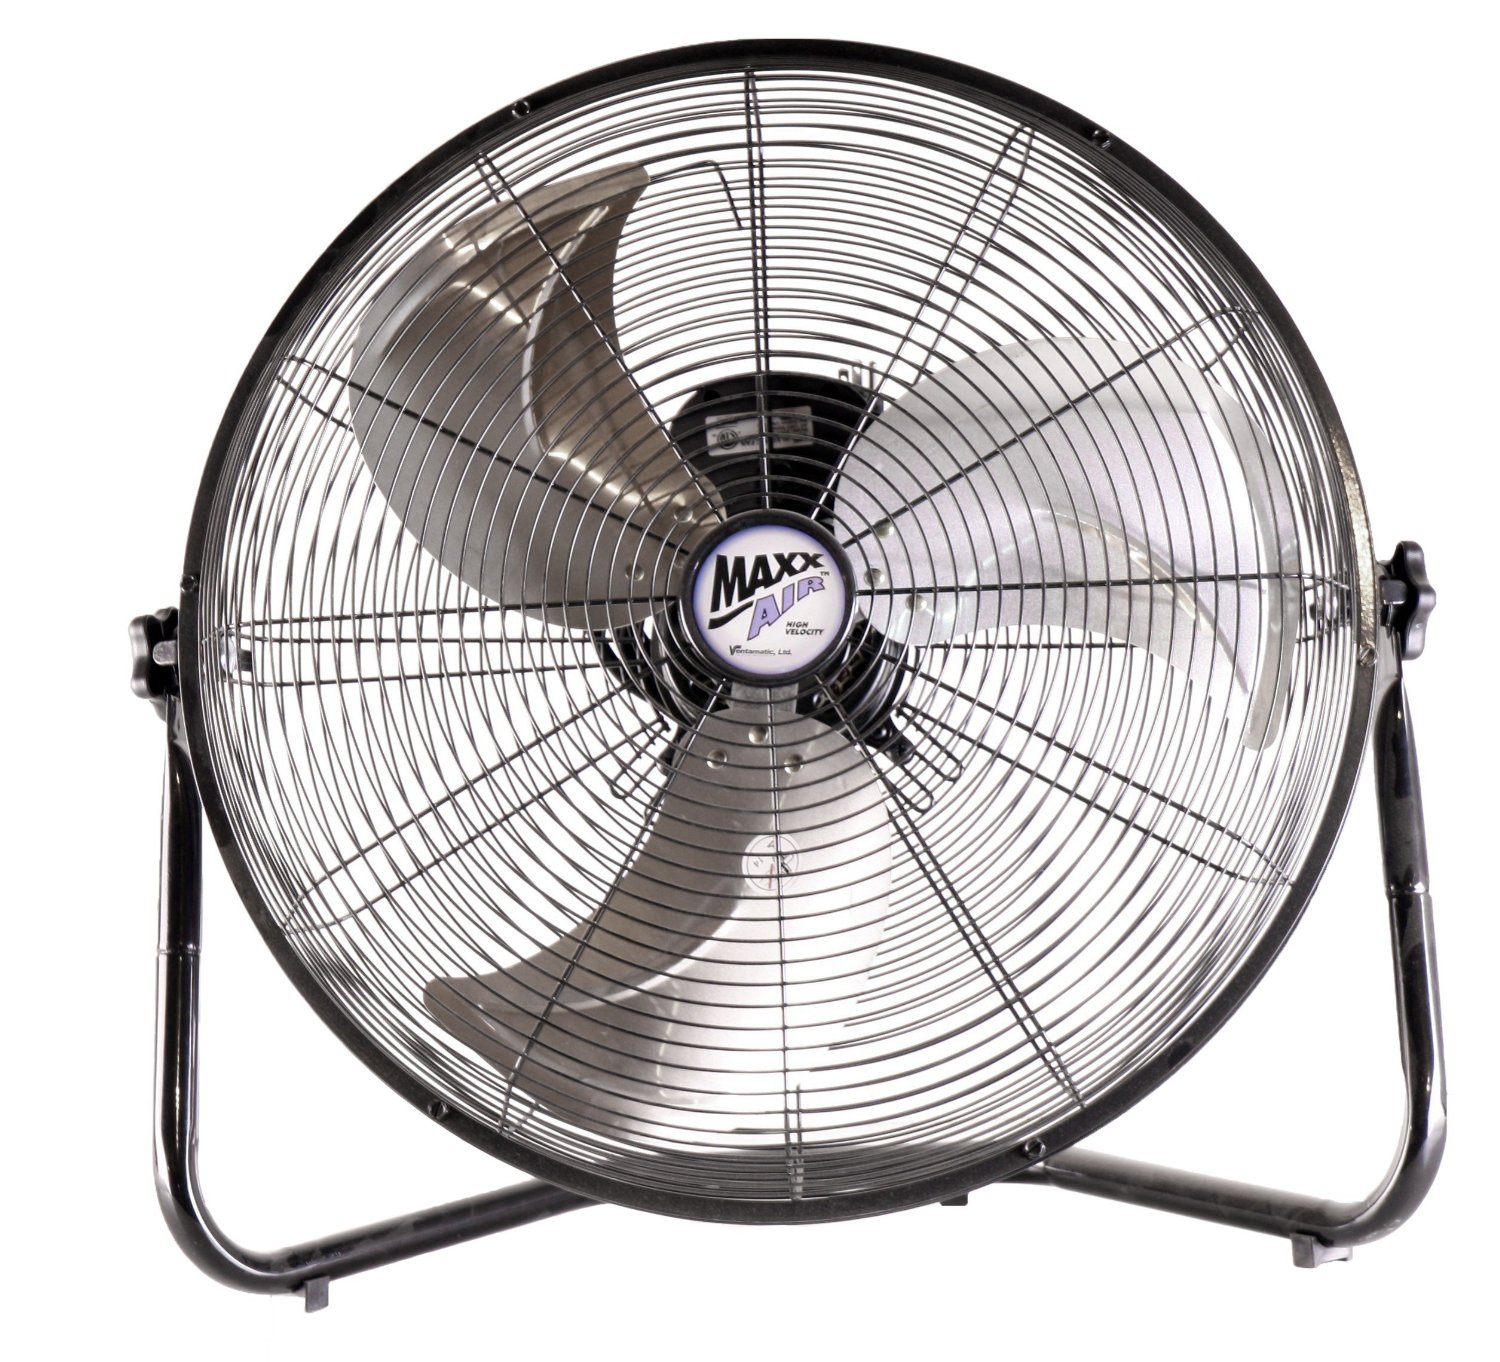 MaxxAir HVFF 20 High Velocity 20 Inch Floor Fan #615972